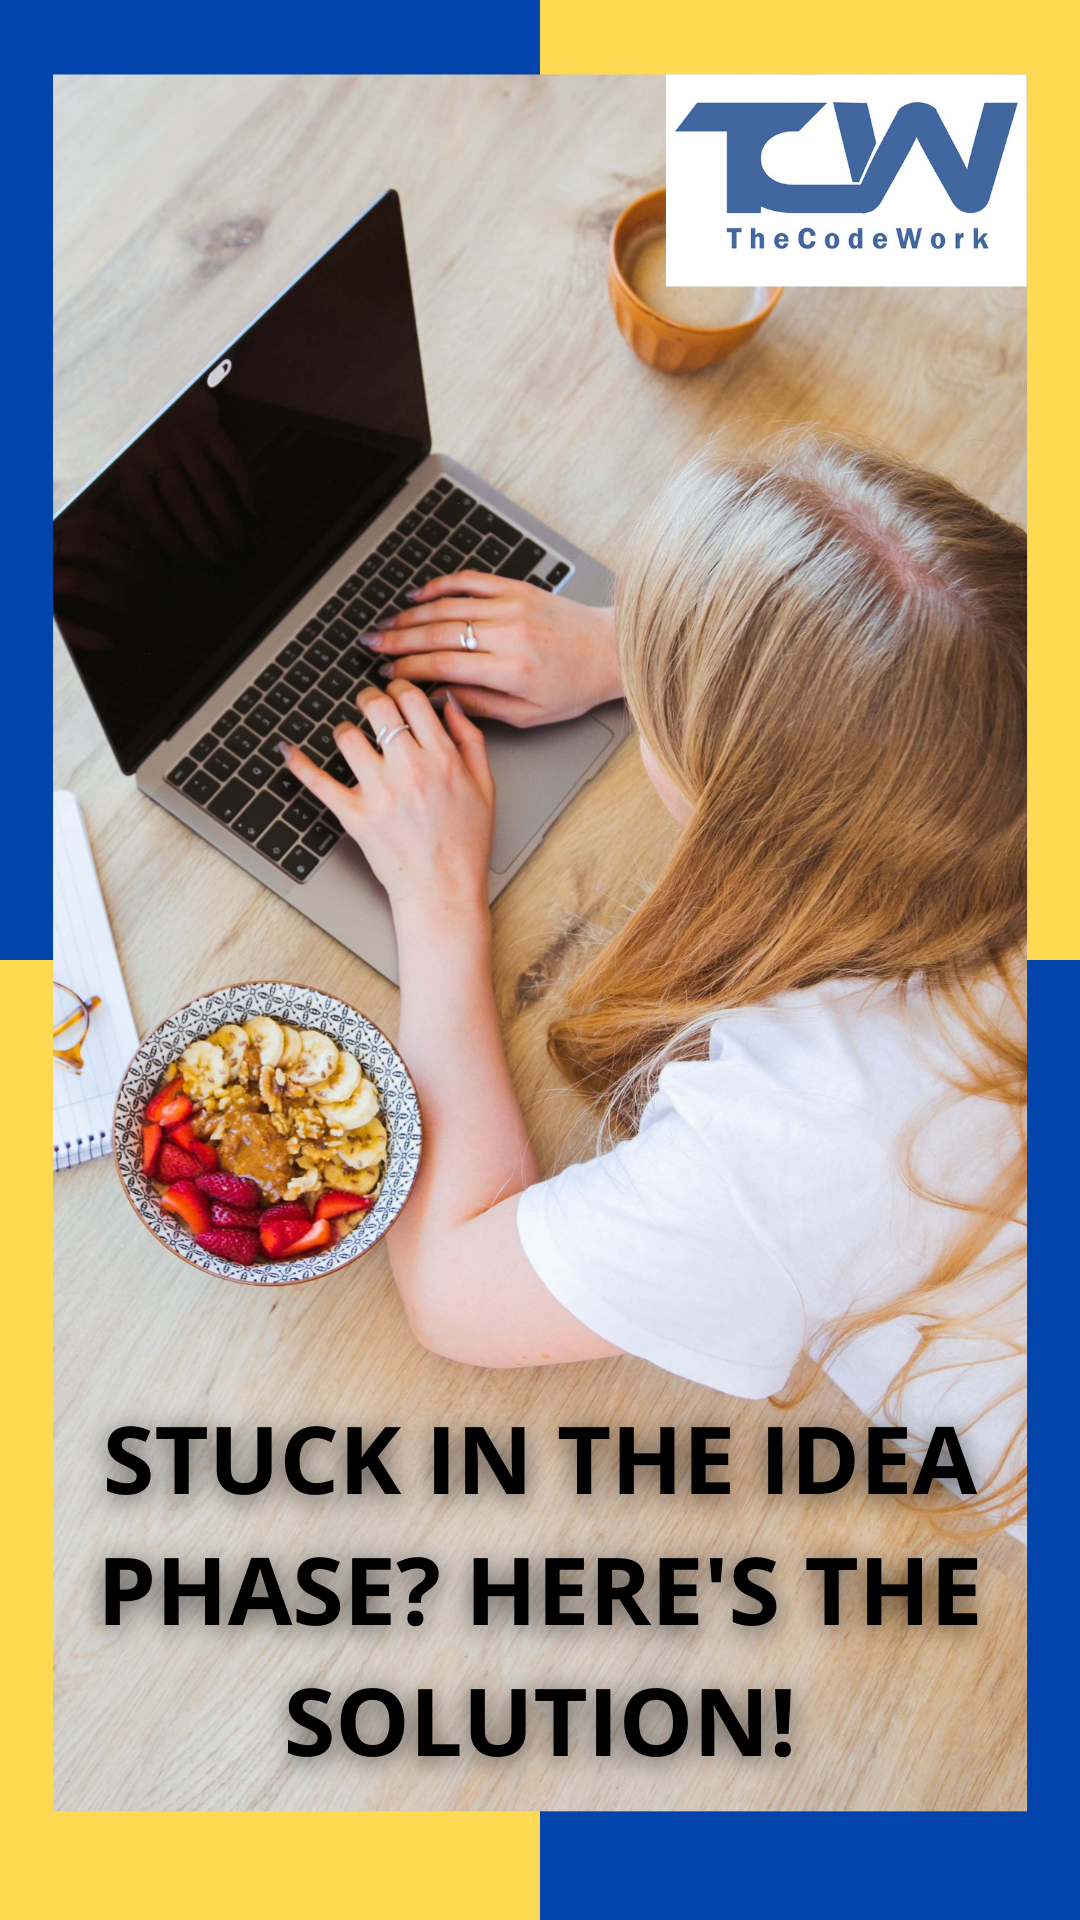 Stuck in the Idea Phase? Here's the Solution!